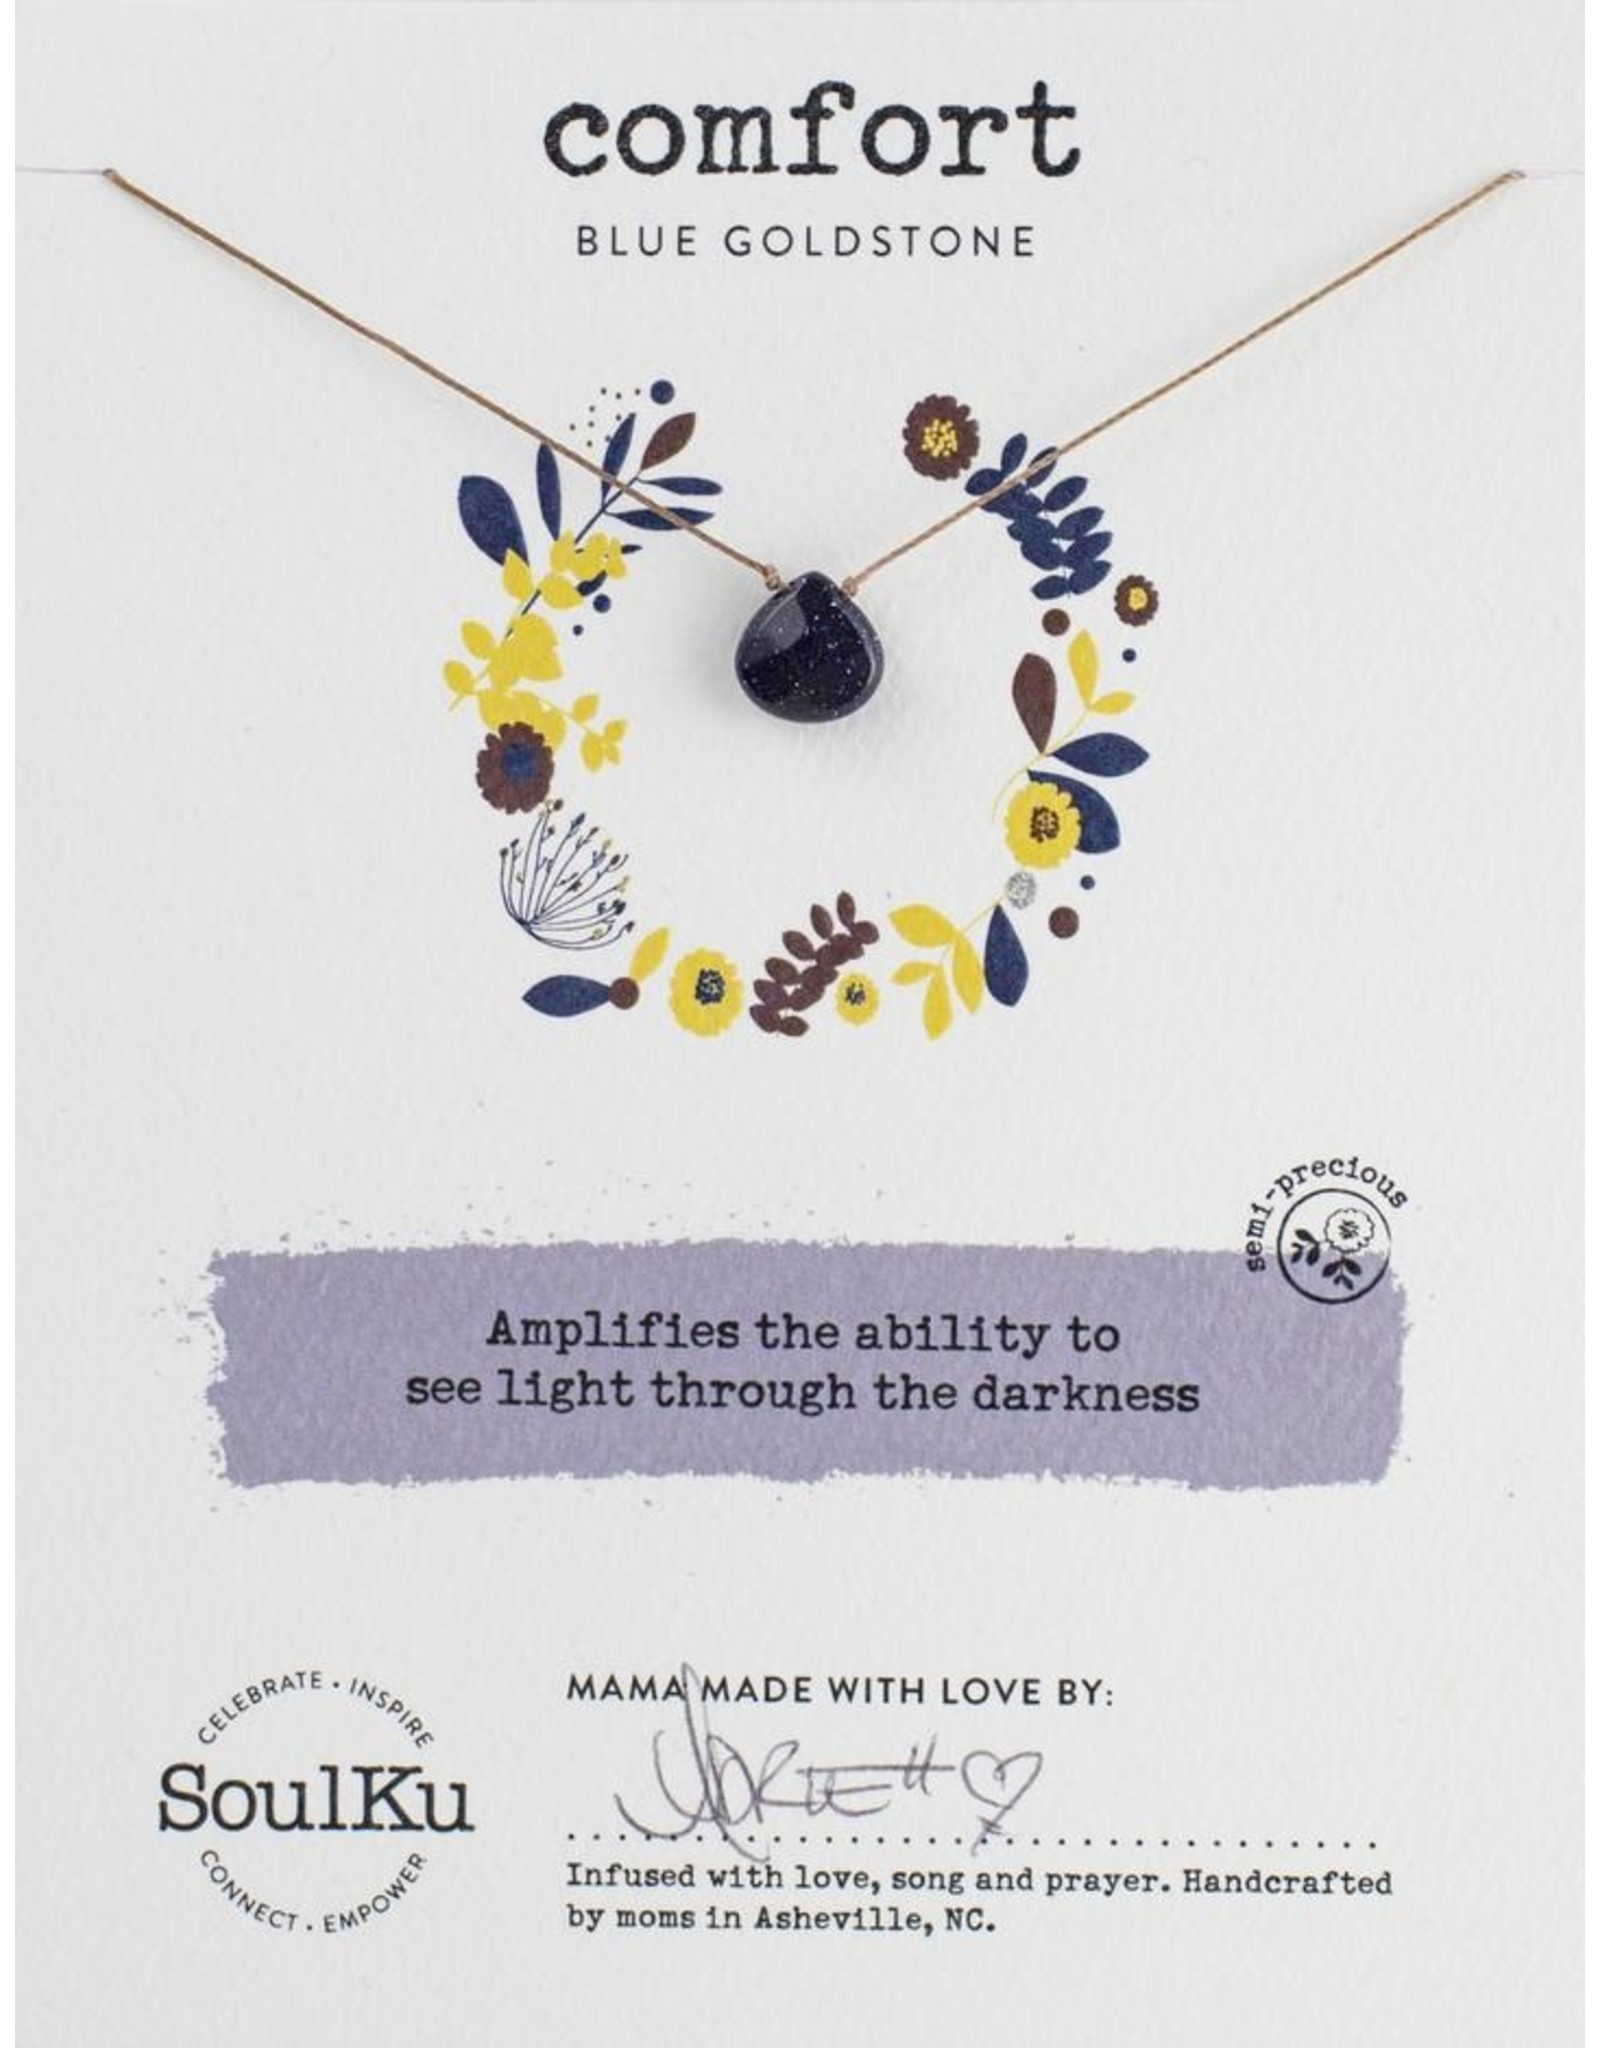 Blue Sandstone Necklace for Comfort-SoulKu